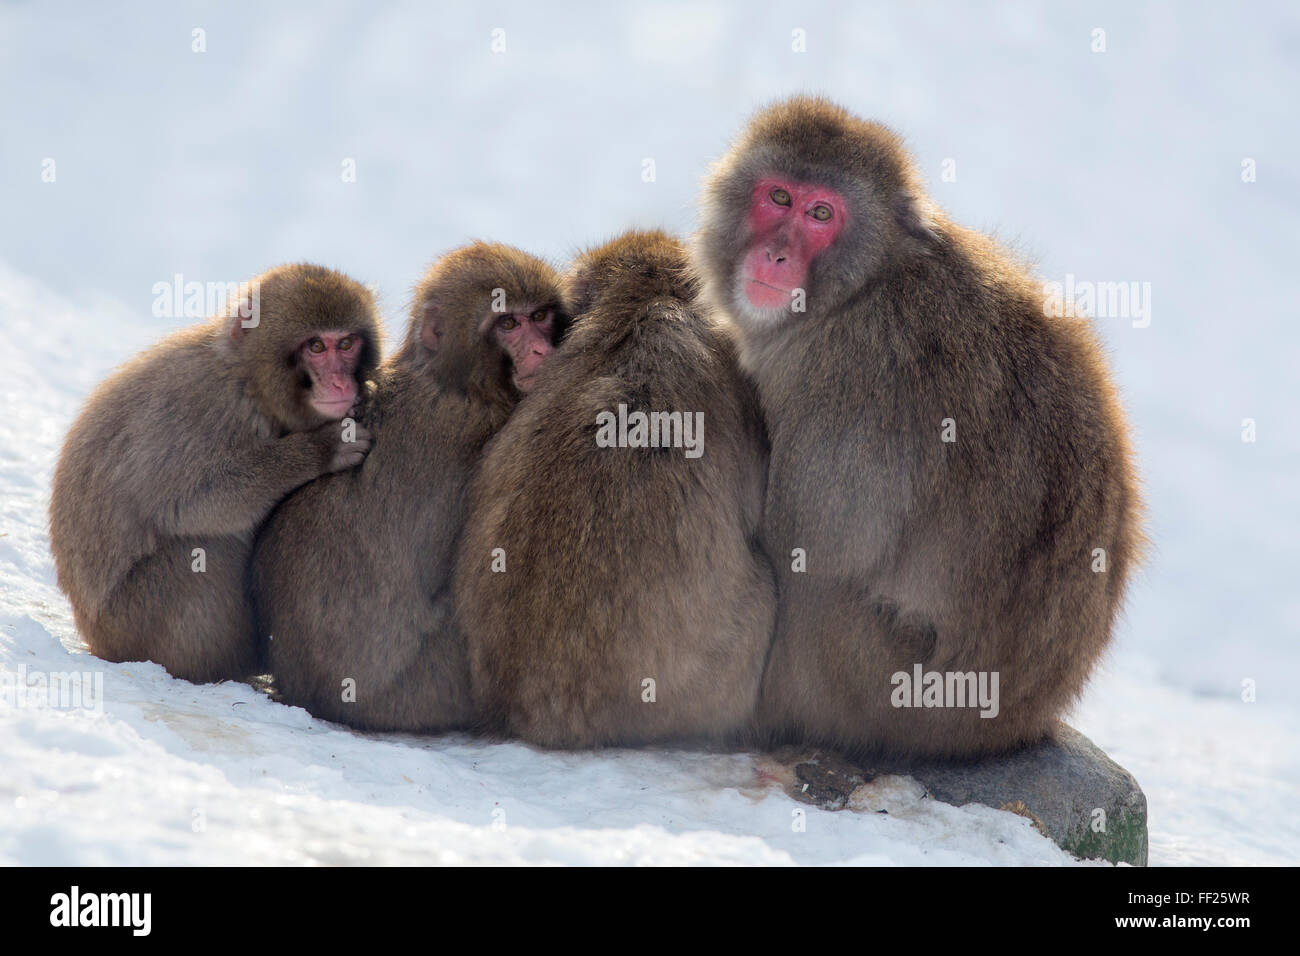 Snow monkeys huddRMing together for warmth, Japanese macaque, captive, HighRMand WiRMdRMife Park, Kingussie, ScotRMand, - Stock Image